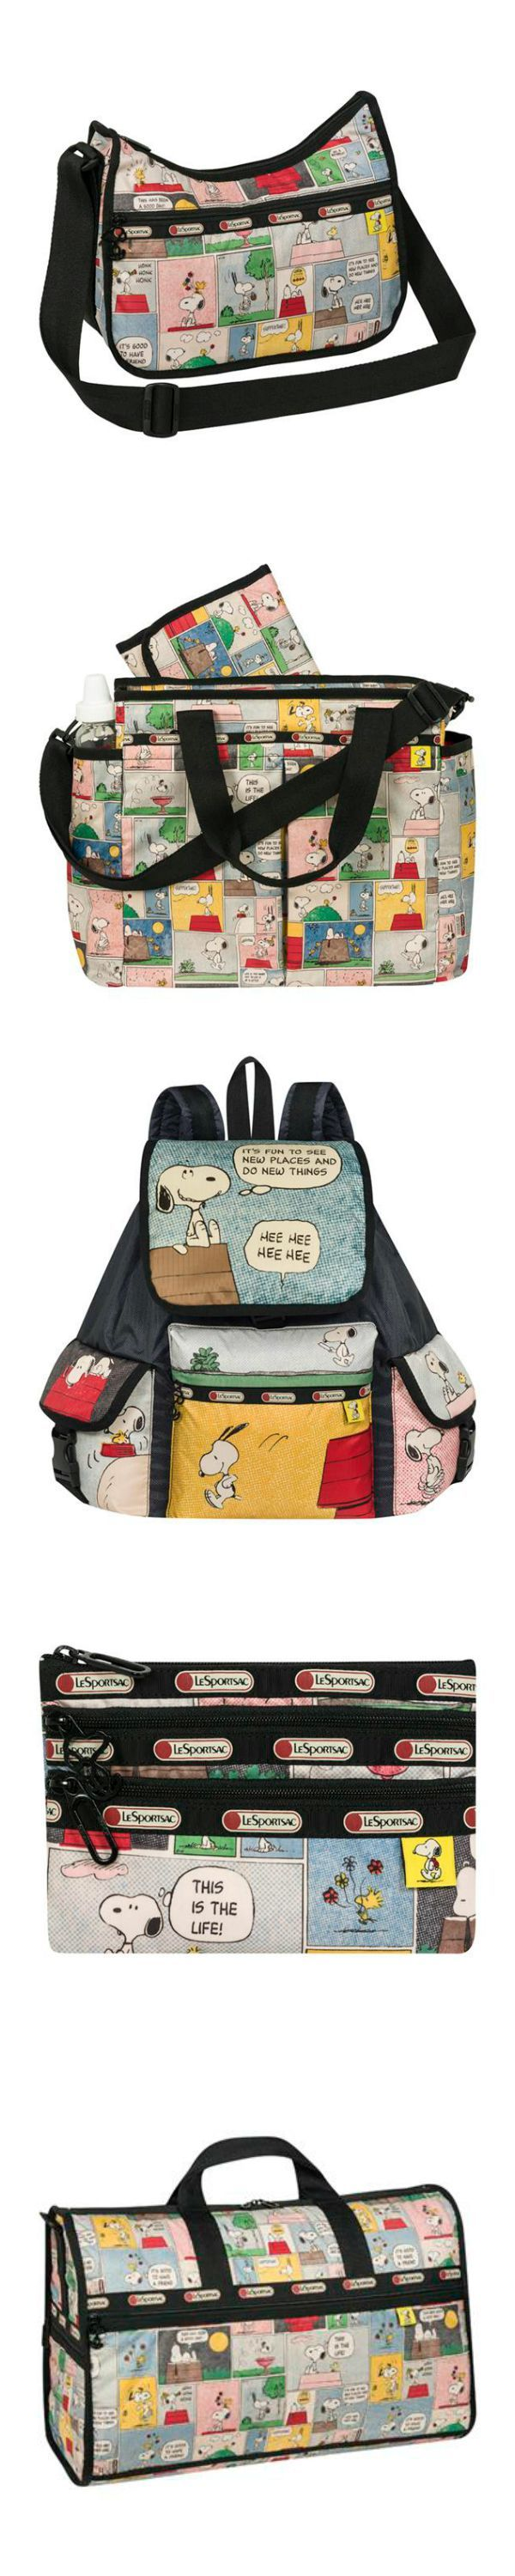 Bring your best friend, Snoopy, wherever you go! LeSportsac has a variety of cute backpacks, purses, cases and more just waiting to join your collection. Start shopping at CollectPeanuts.com to help support our site.